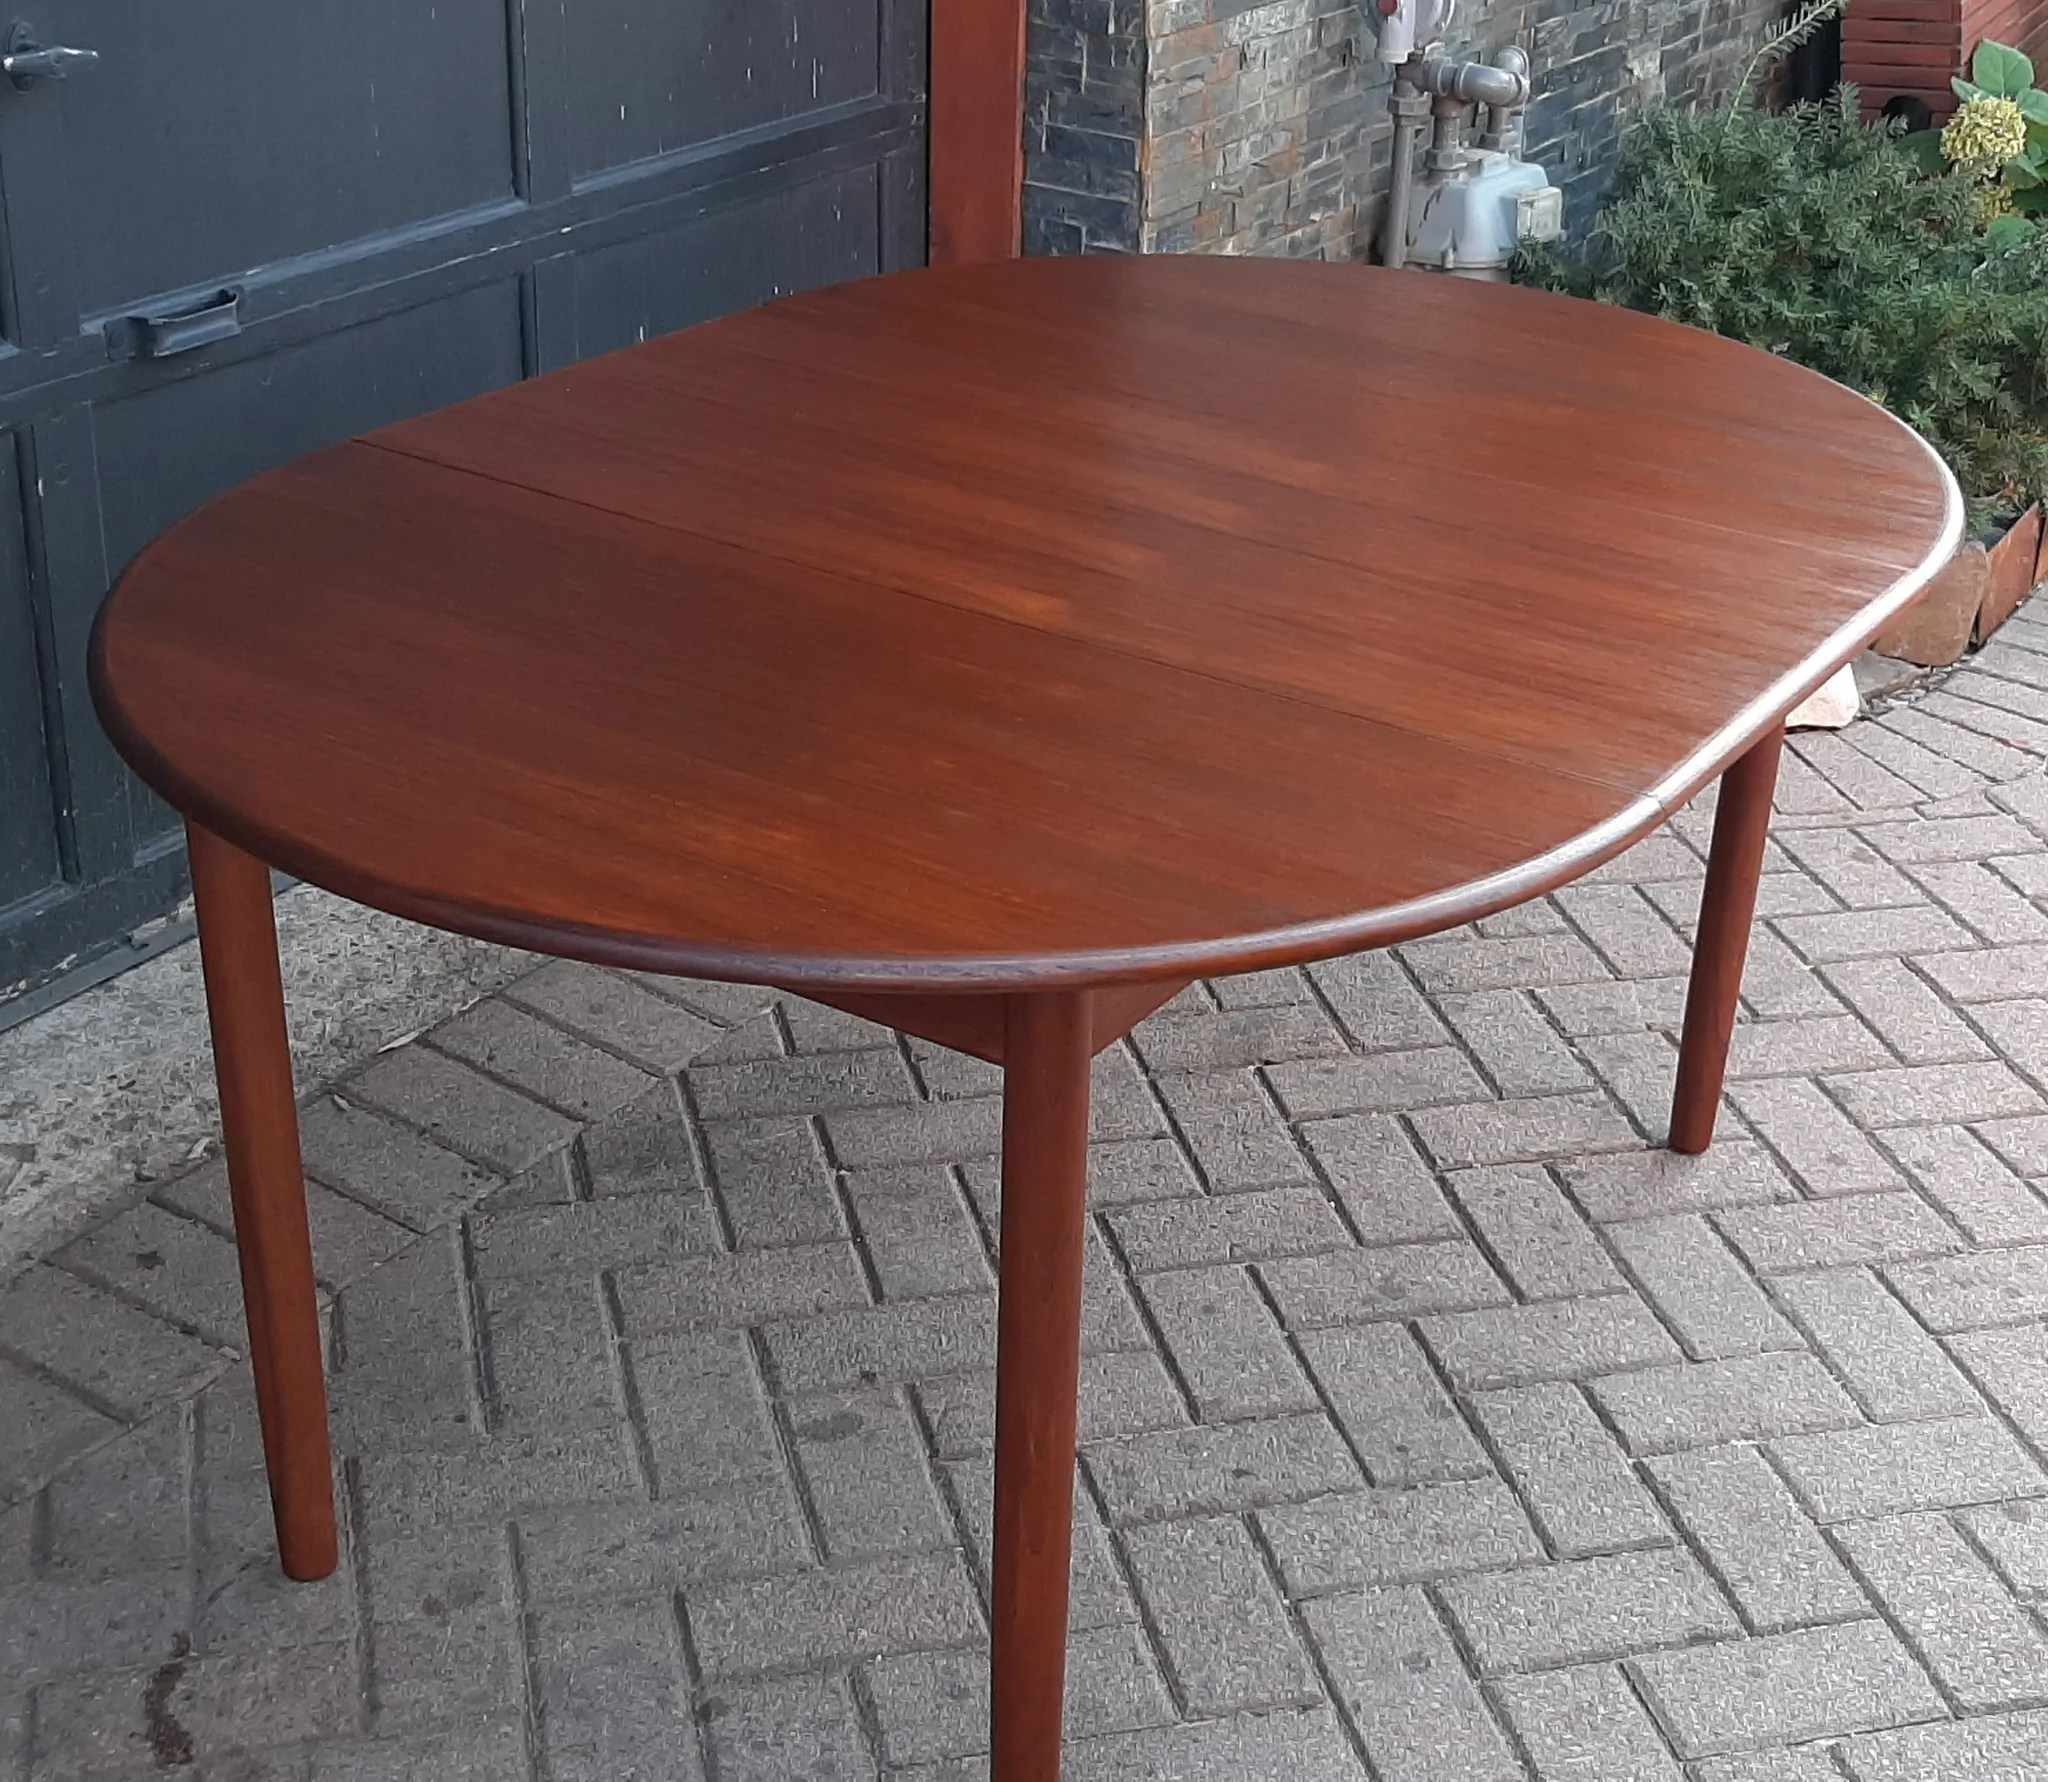 Refinished Danish Mcm Teak Table Round To Oval W 1 Leaf 41 5